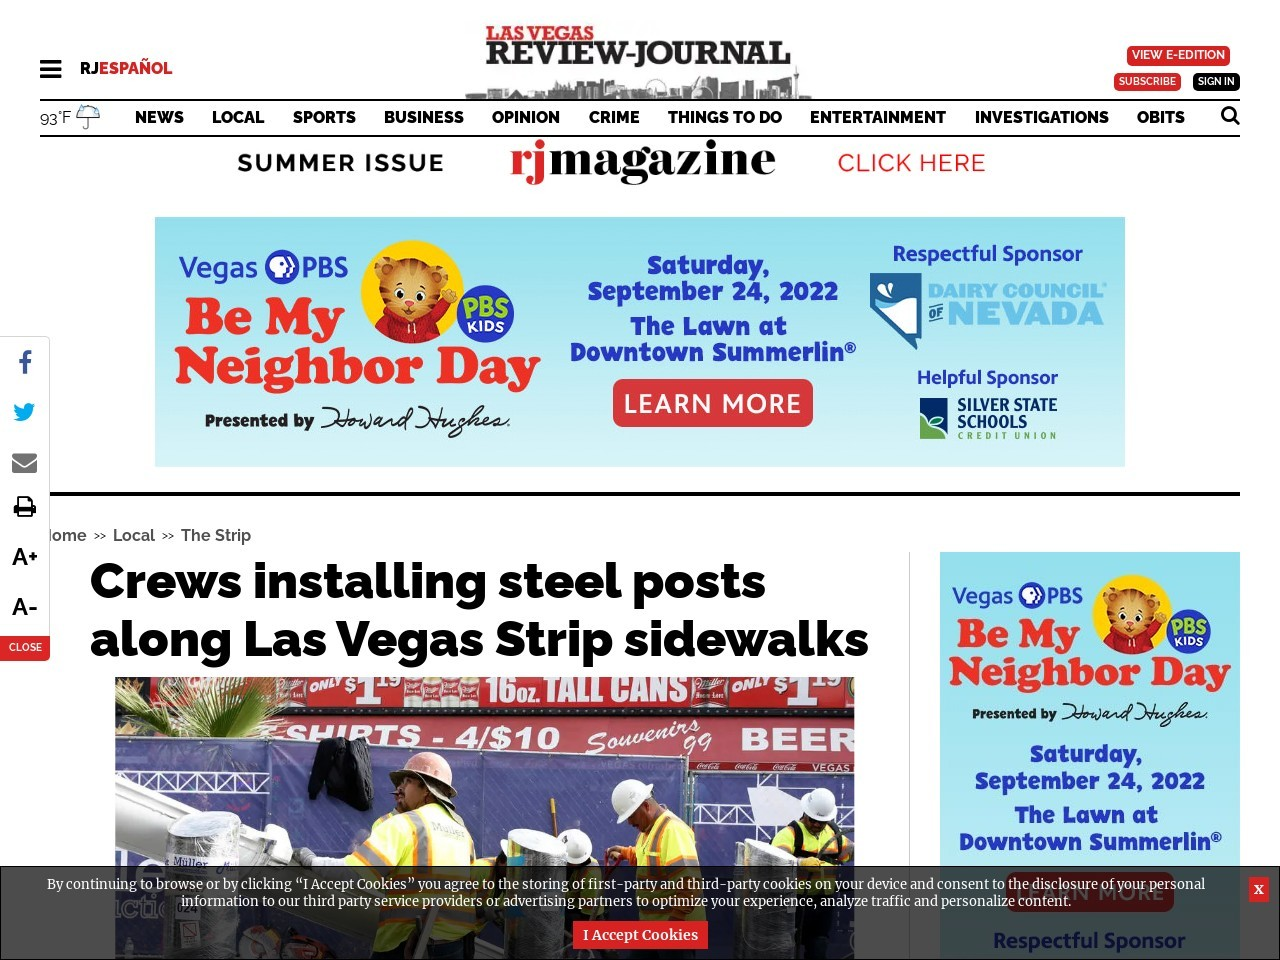 Crews installing steel posts along Las Vegas Strip sidewalks